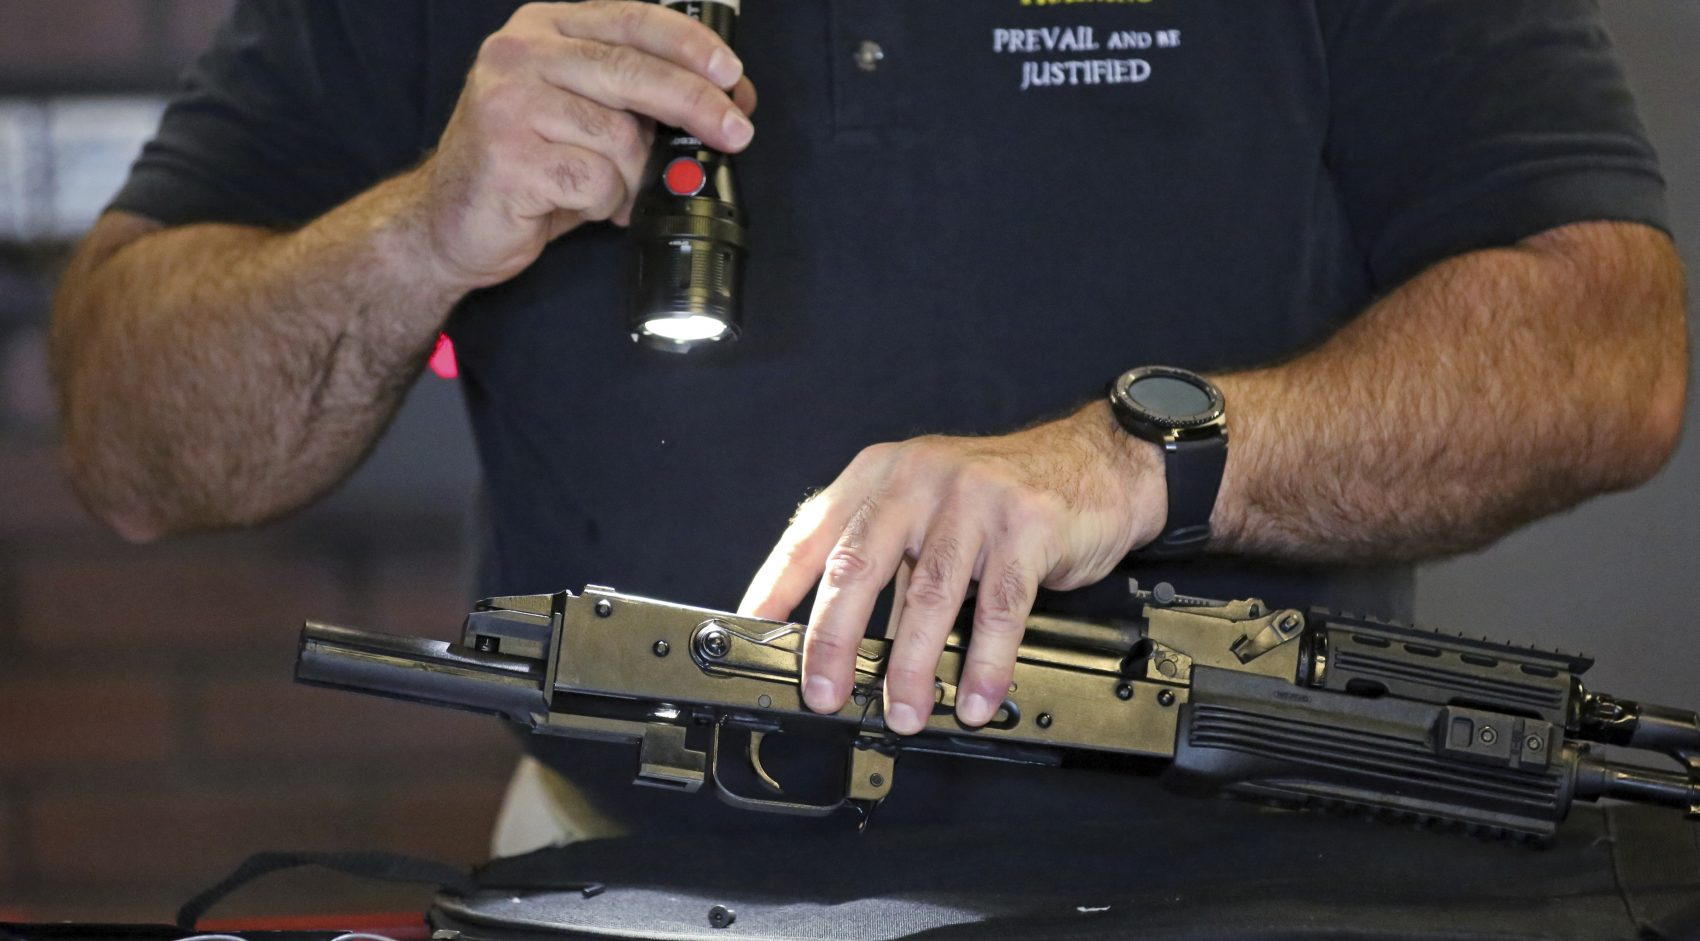 """Clark Aposhian, chairman of the Utah Shooting Sports Council, demonstrates how a little-known device called a """"bump stock"""" works when attached to a semi-automatic rifle at the Gun Vault store and shooting range in Utah. (Rick Bowmer/AP)"""